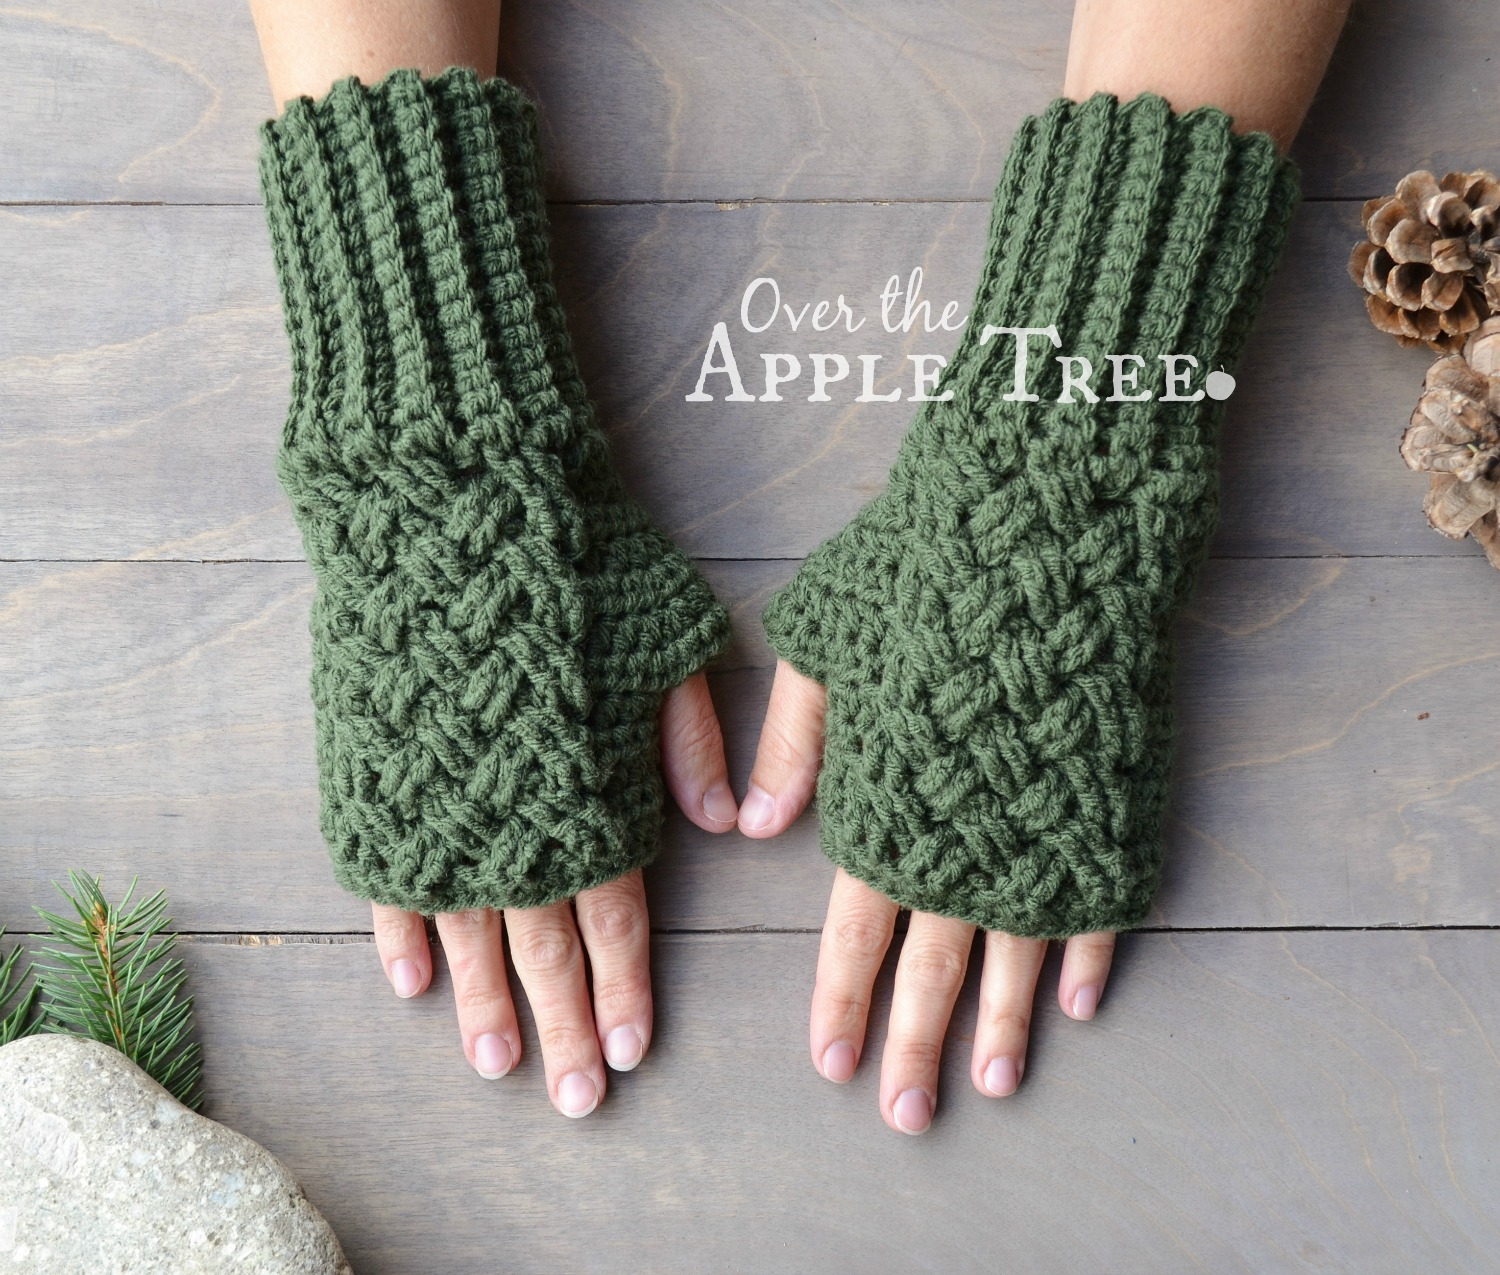 crochet gloves celtic weave fingerless gloves, pattern by over the apple tree udcdicx